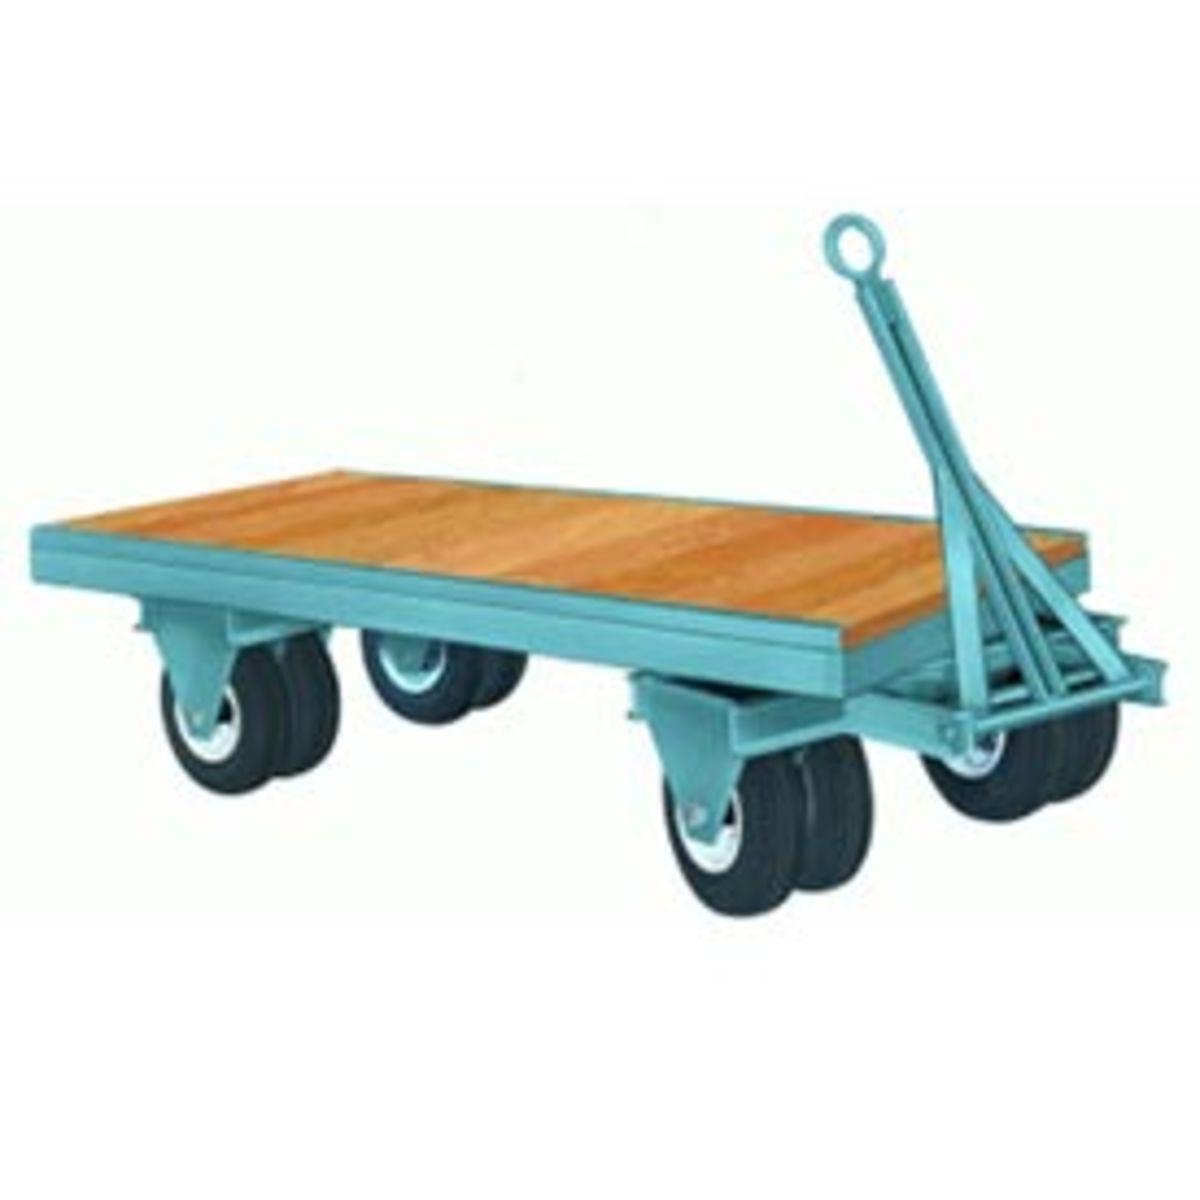 "This 42"" x 84"" fifth-wheel-steer trailer features a deck of 1 ½"" select hardwood with 12"" x 4"" Moldon Rubber wheels. Trailer designed for power towing. 1-1/4"" tapered roller bearings with lube fittings rotate on 1-1/4"" diameter axles........"